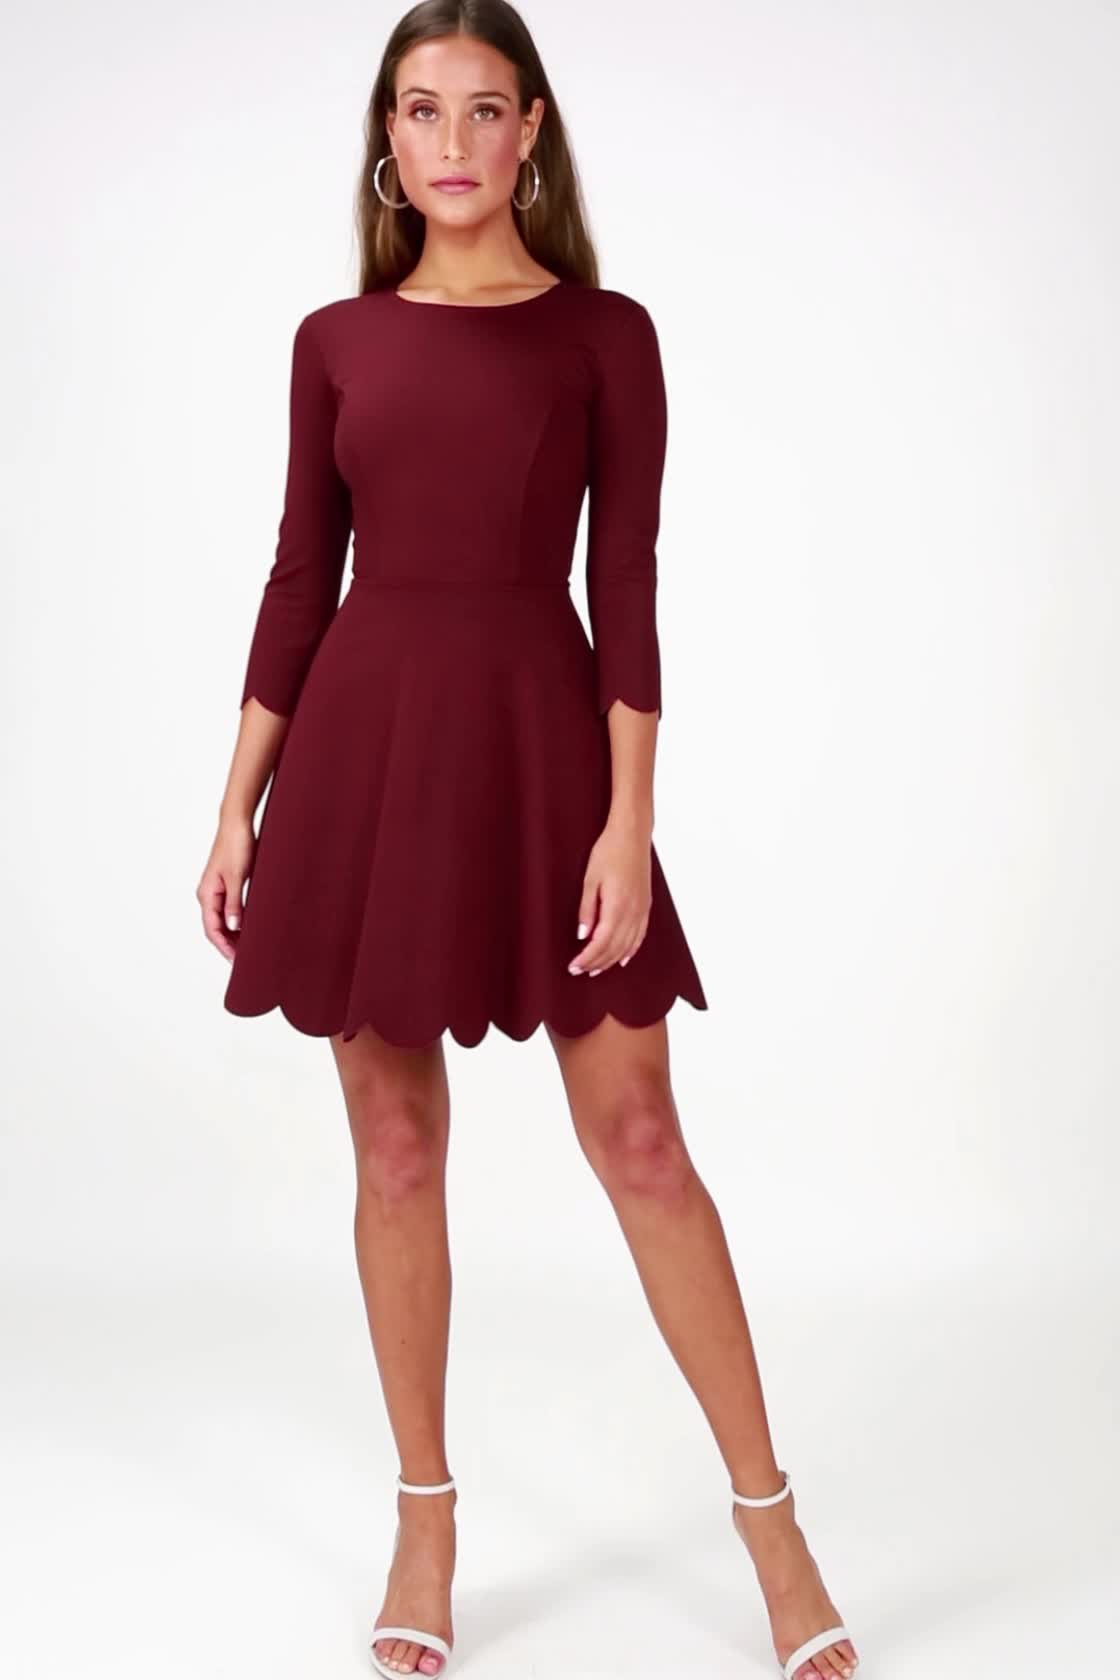 1d3b20c5993387 Burgundy Skater Dress - Long Sleeve Dress - Skater Dress